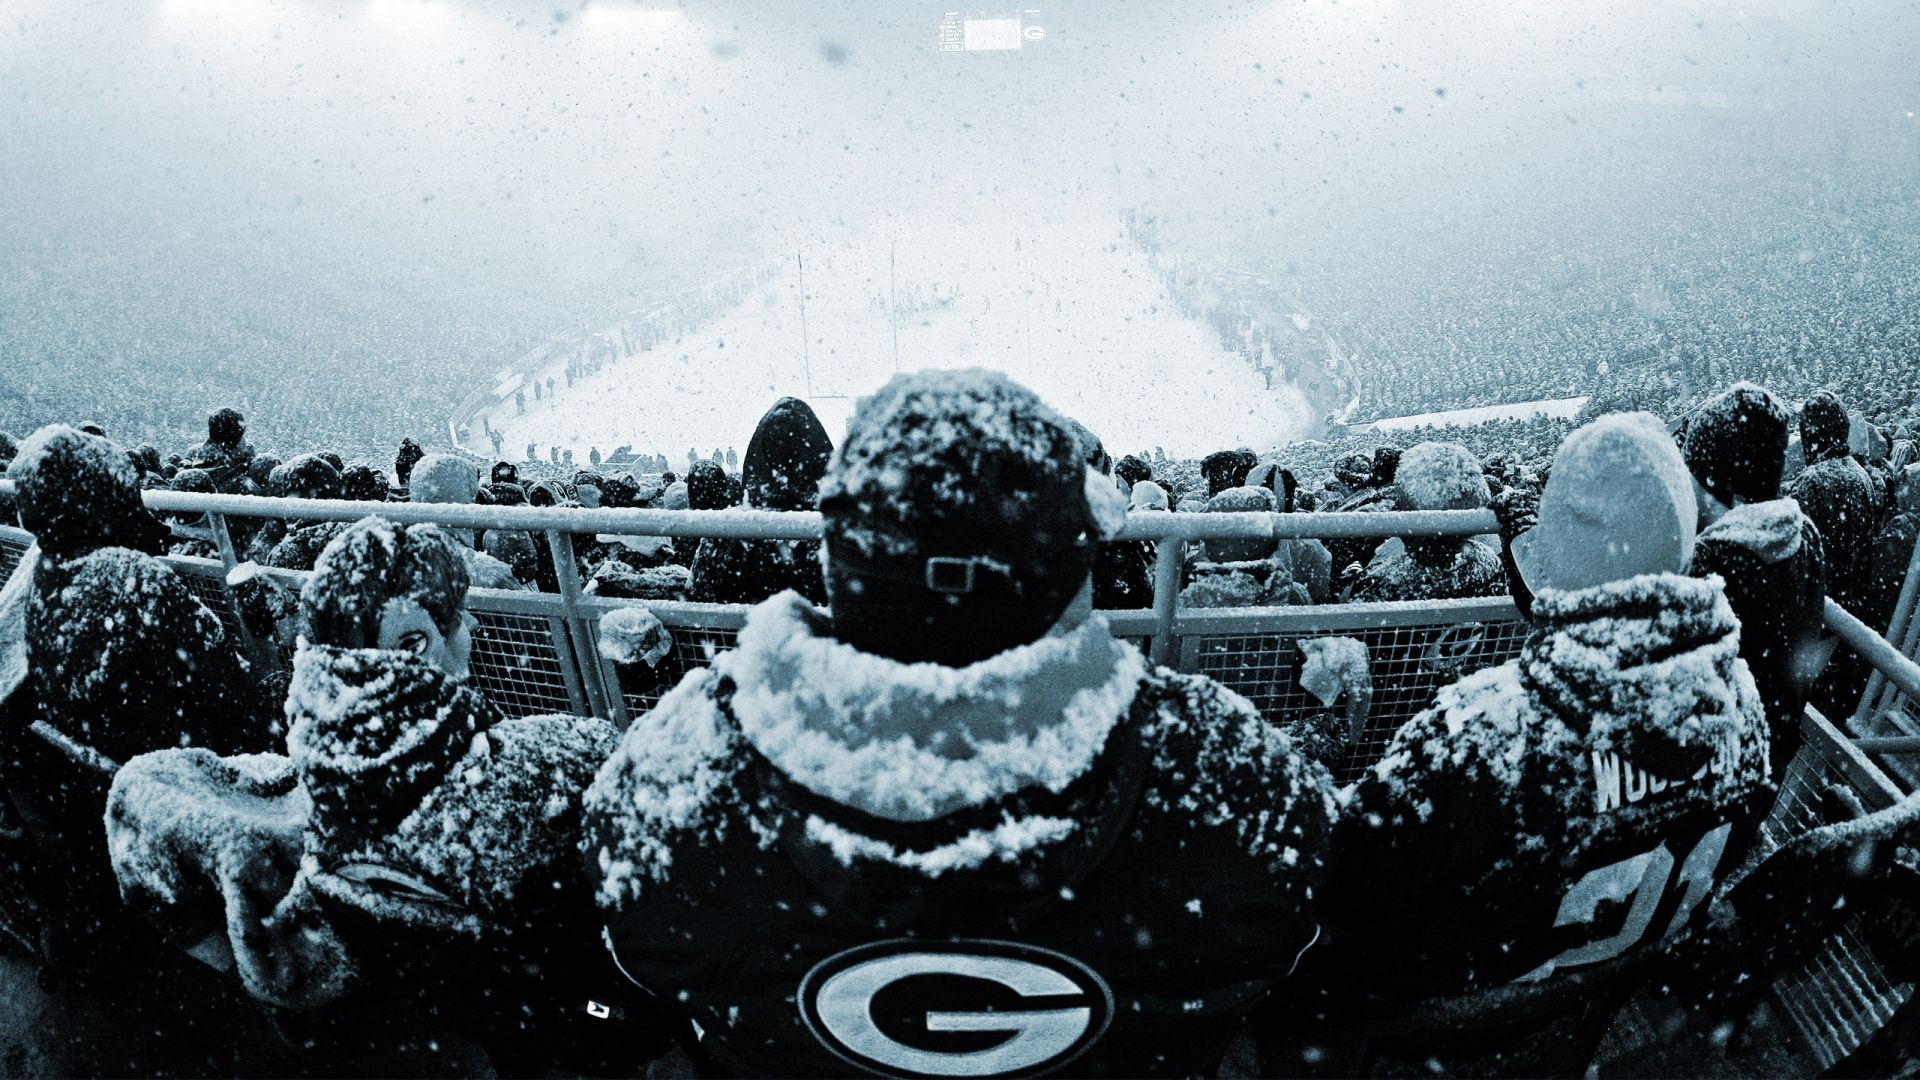 green-bay-packer-HD-1920%C3%971080-Packers-Adorable-wallpaper-wpc5805546